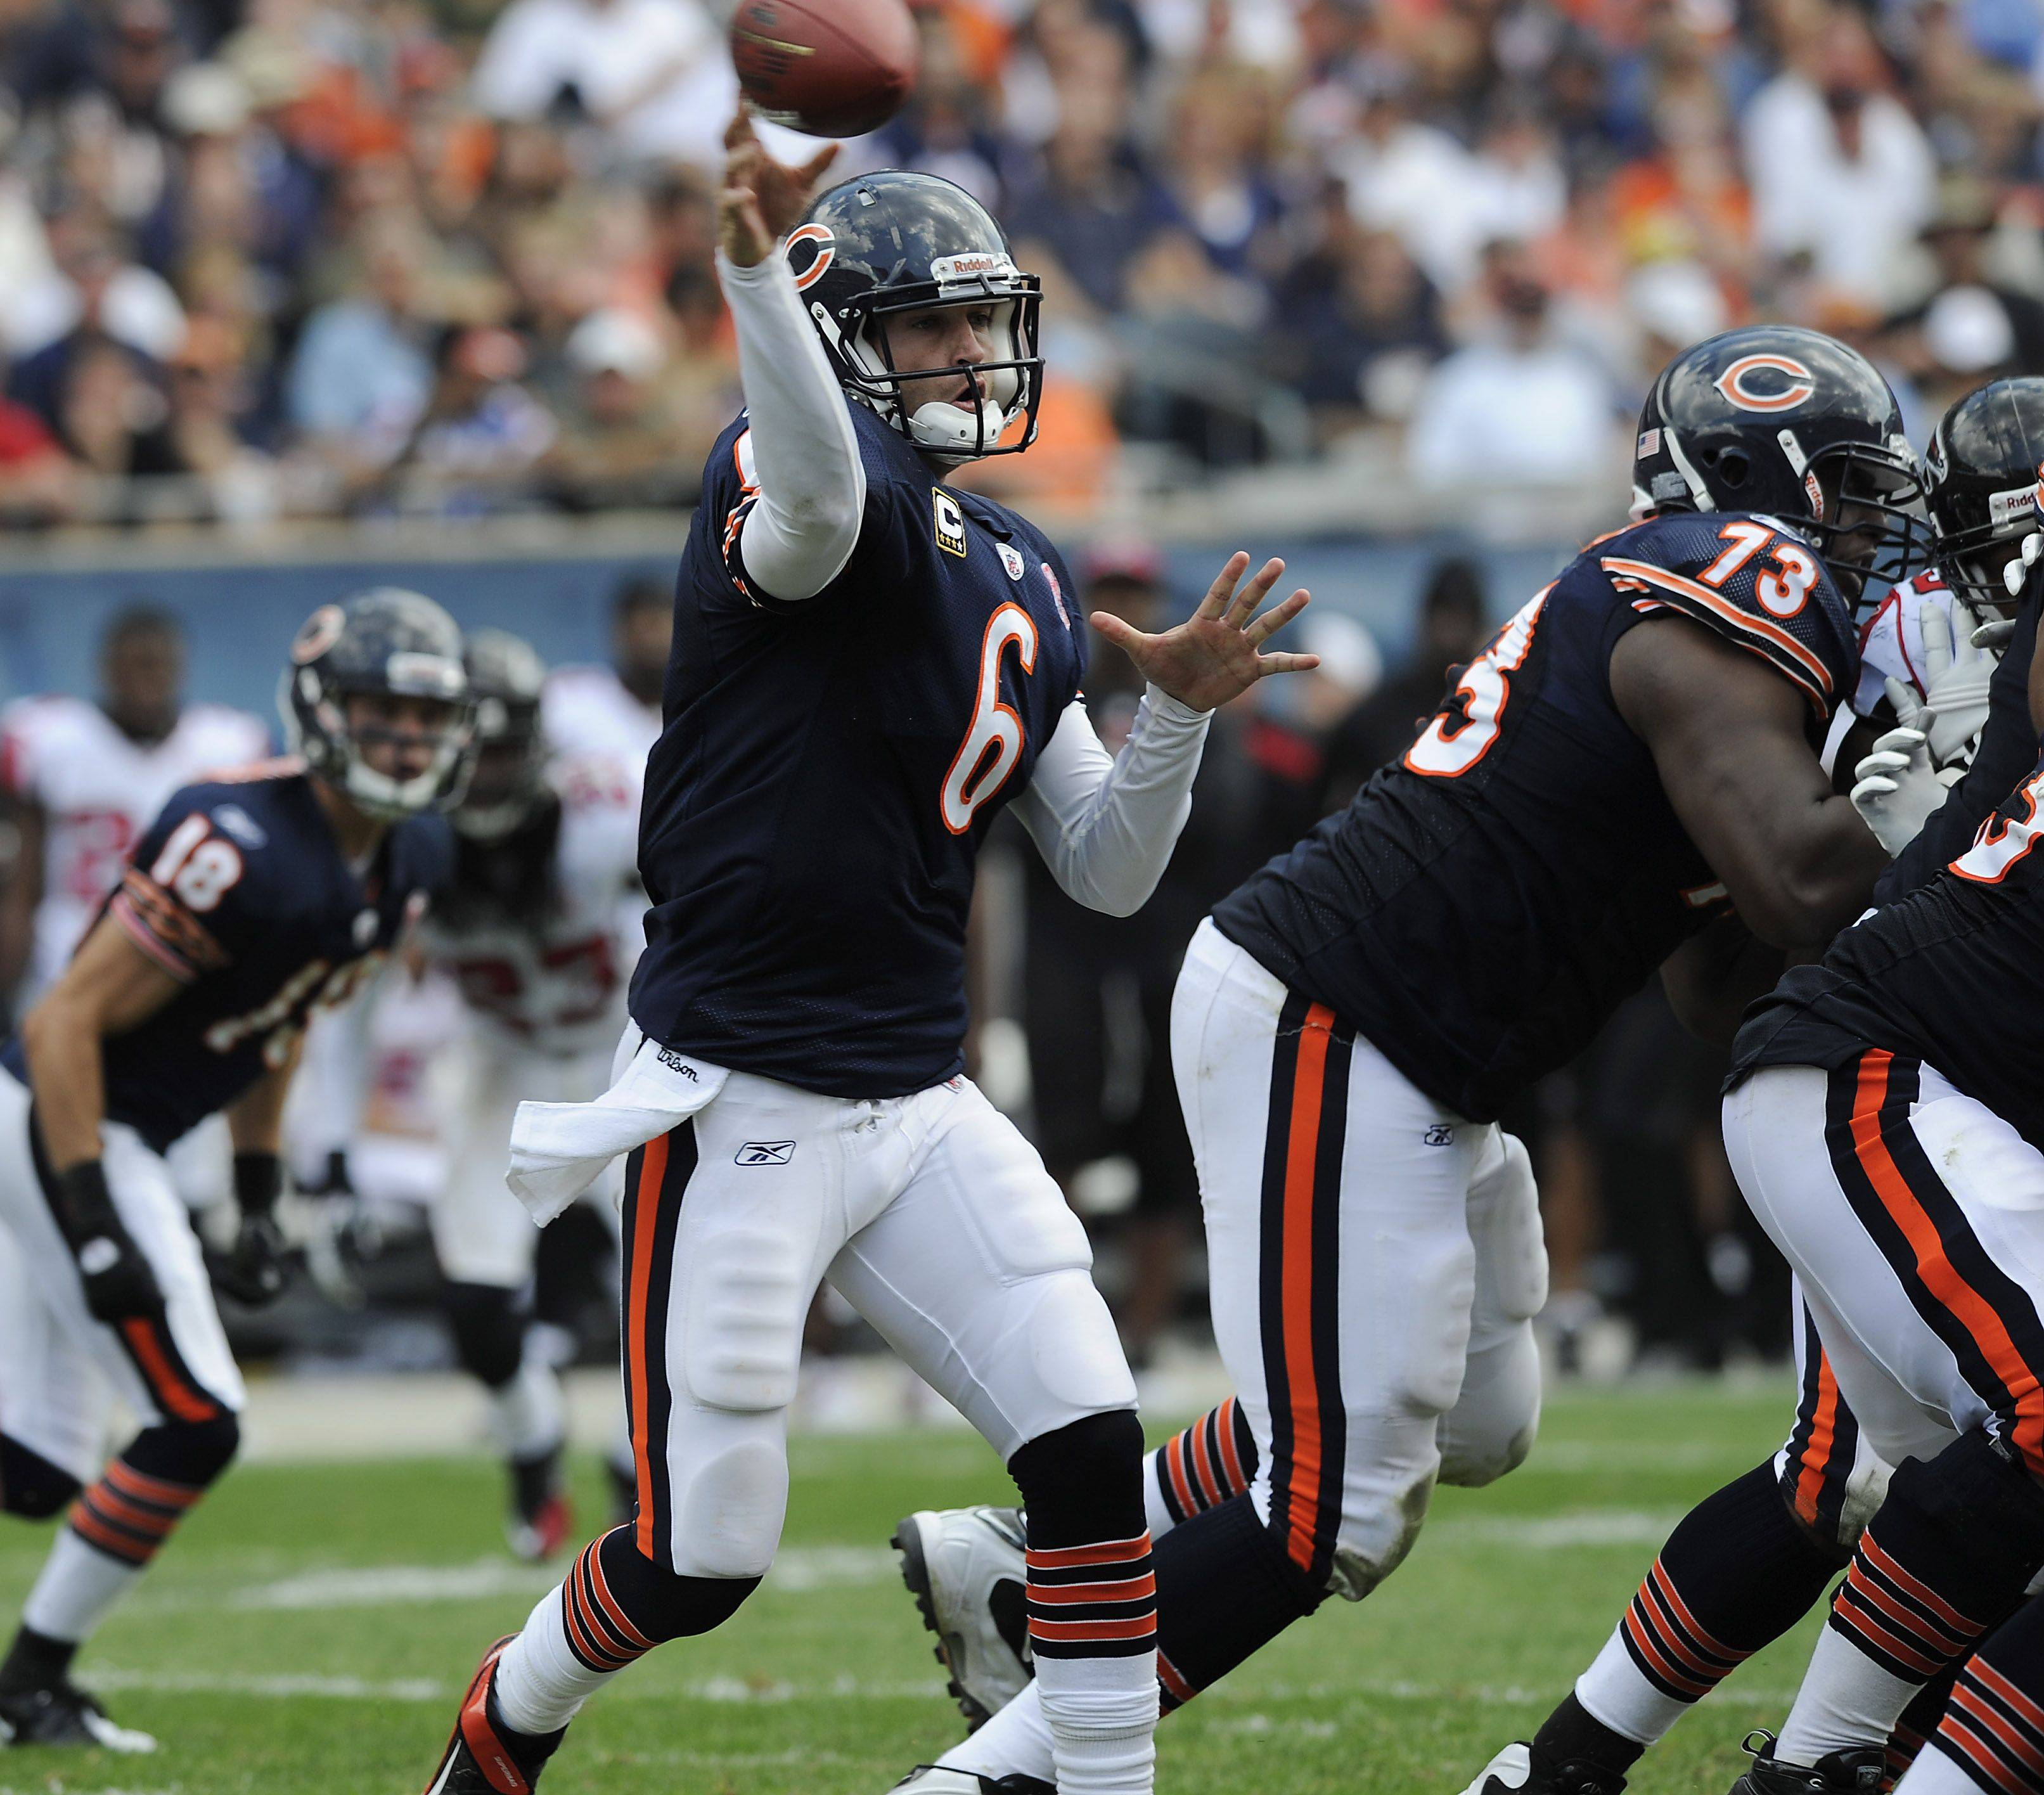 Cutler wants Bears to finish drives